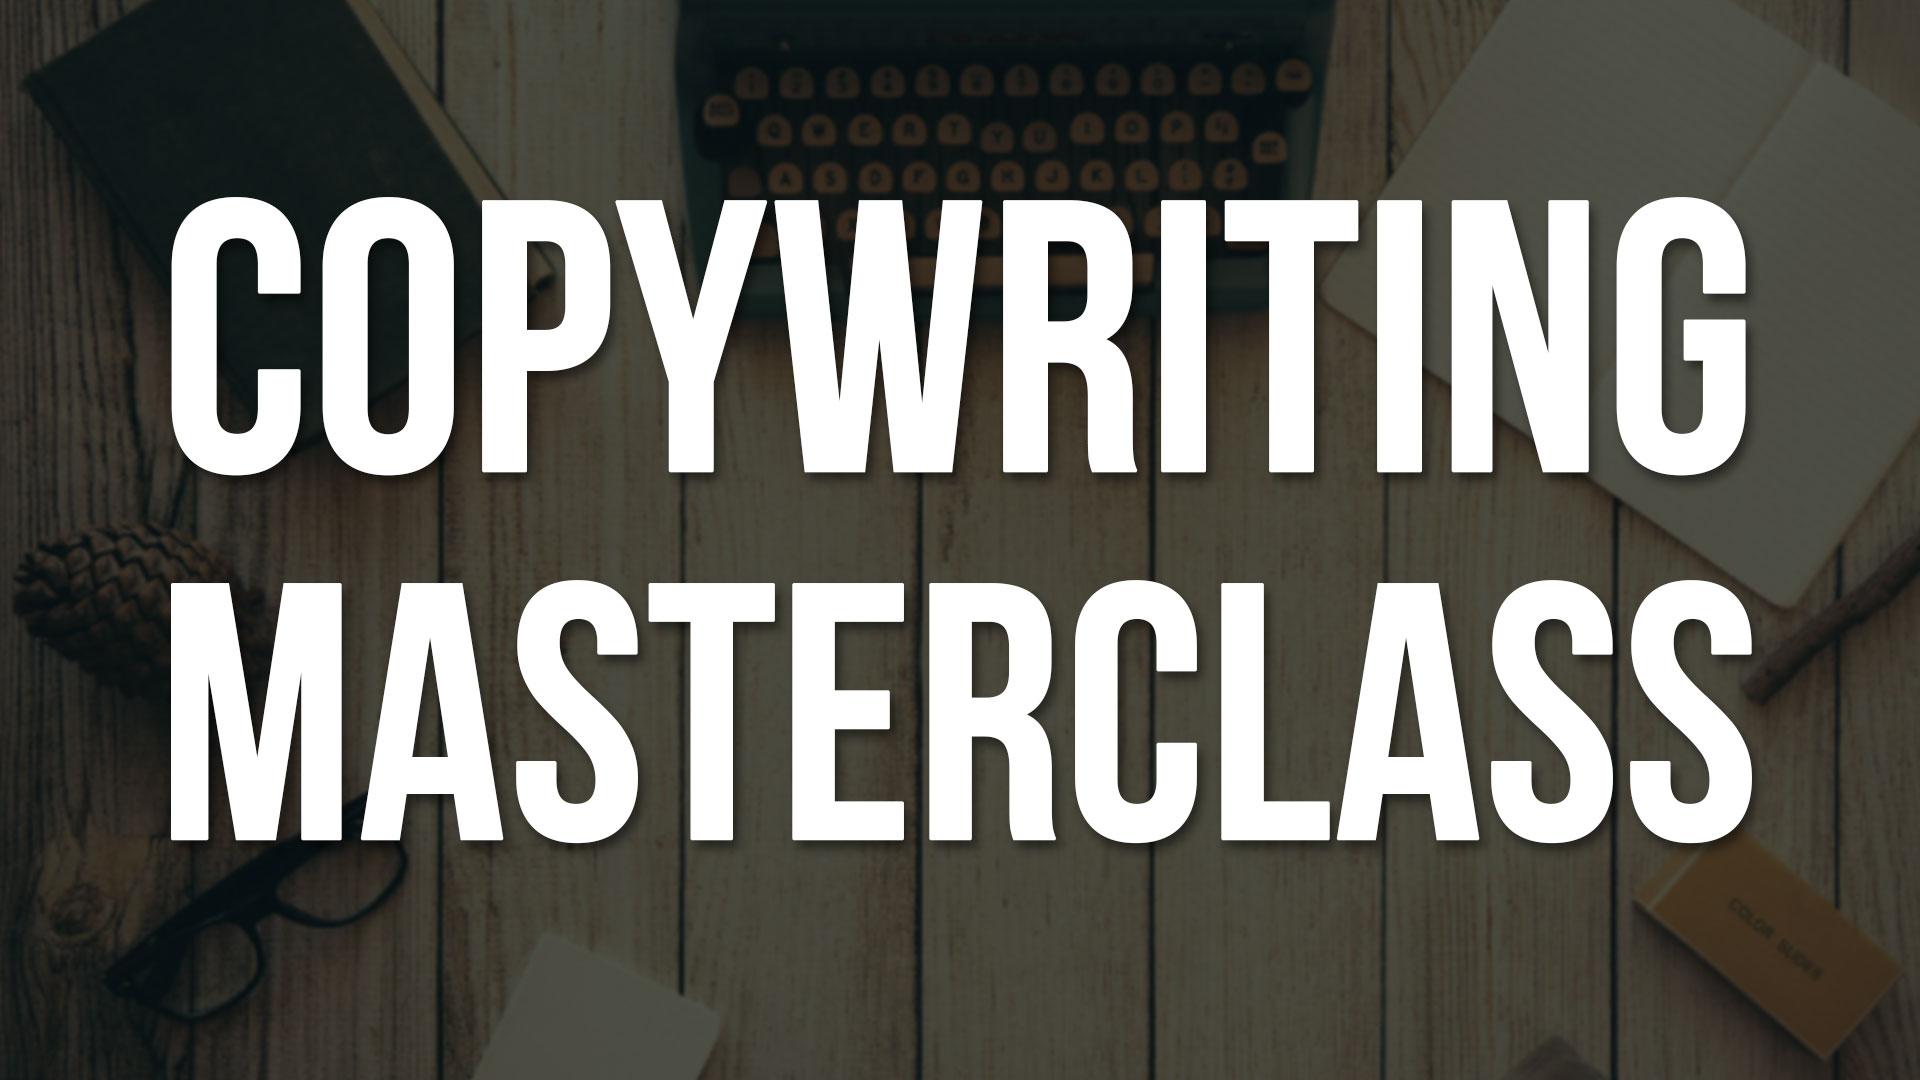 COPYWRITING-MASTERCLASS